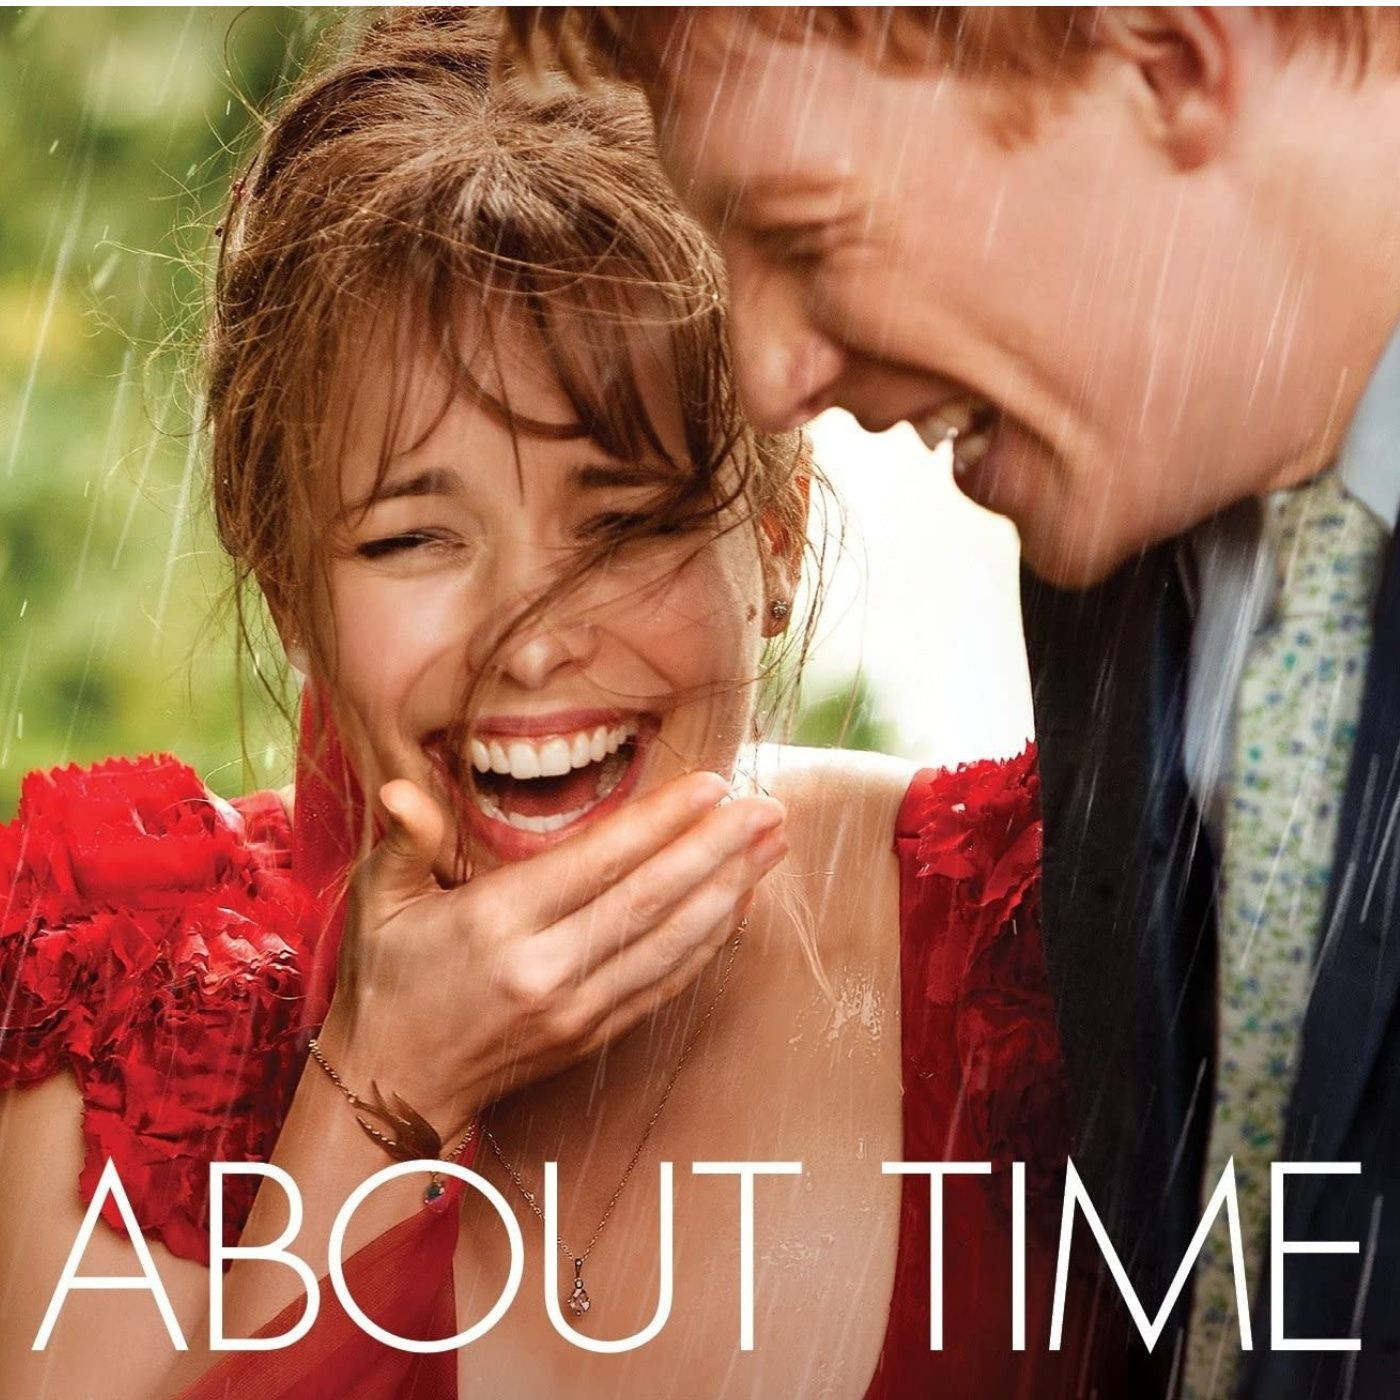 """""""The Illusion of Time"""" Online Weekend Retreat: Movie Session """"About Time"""" with Erik Archbold and Ana Urrejola"""